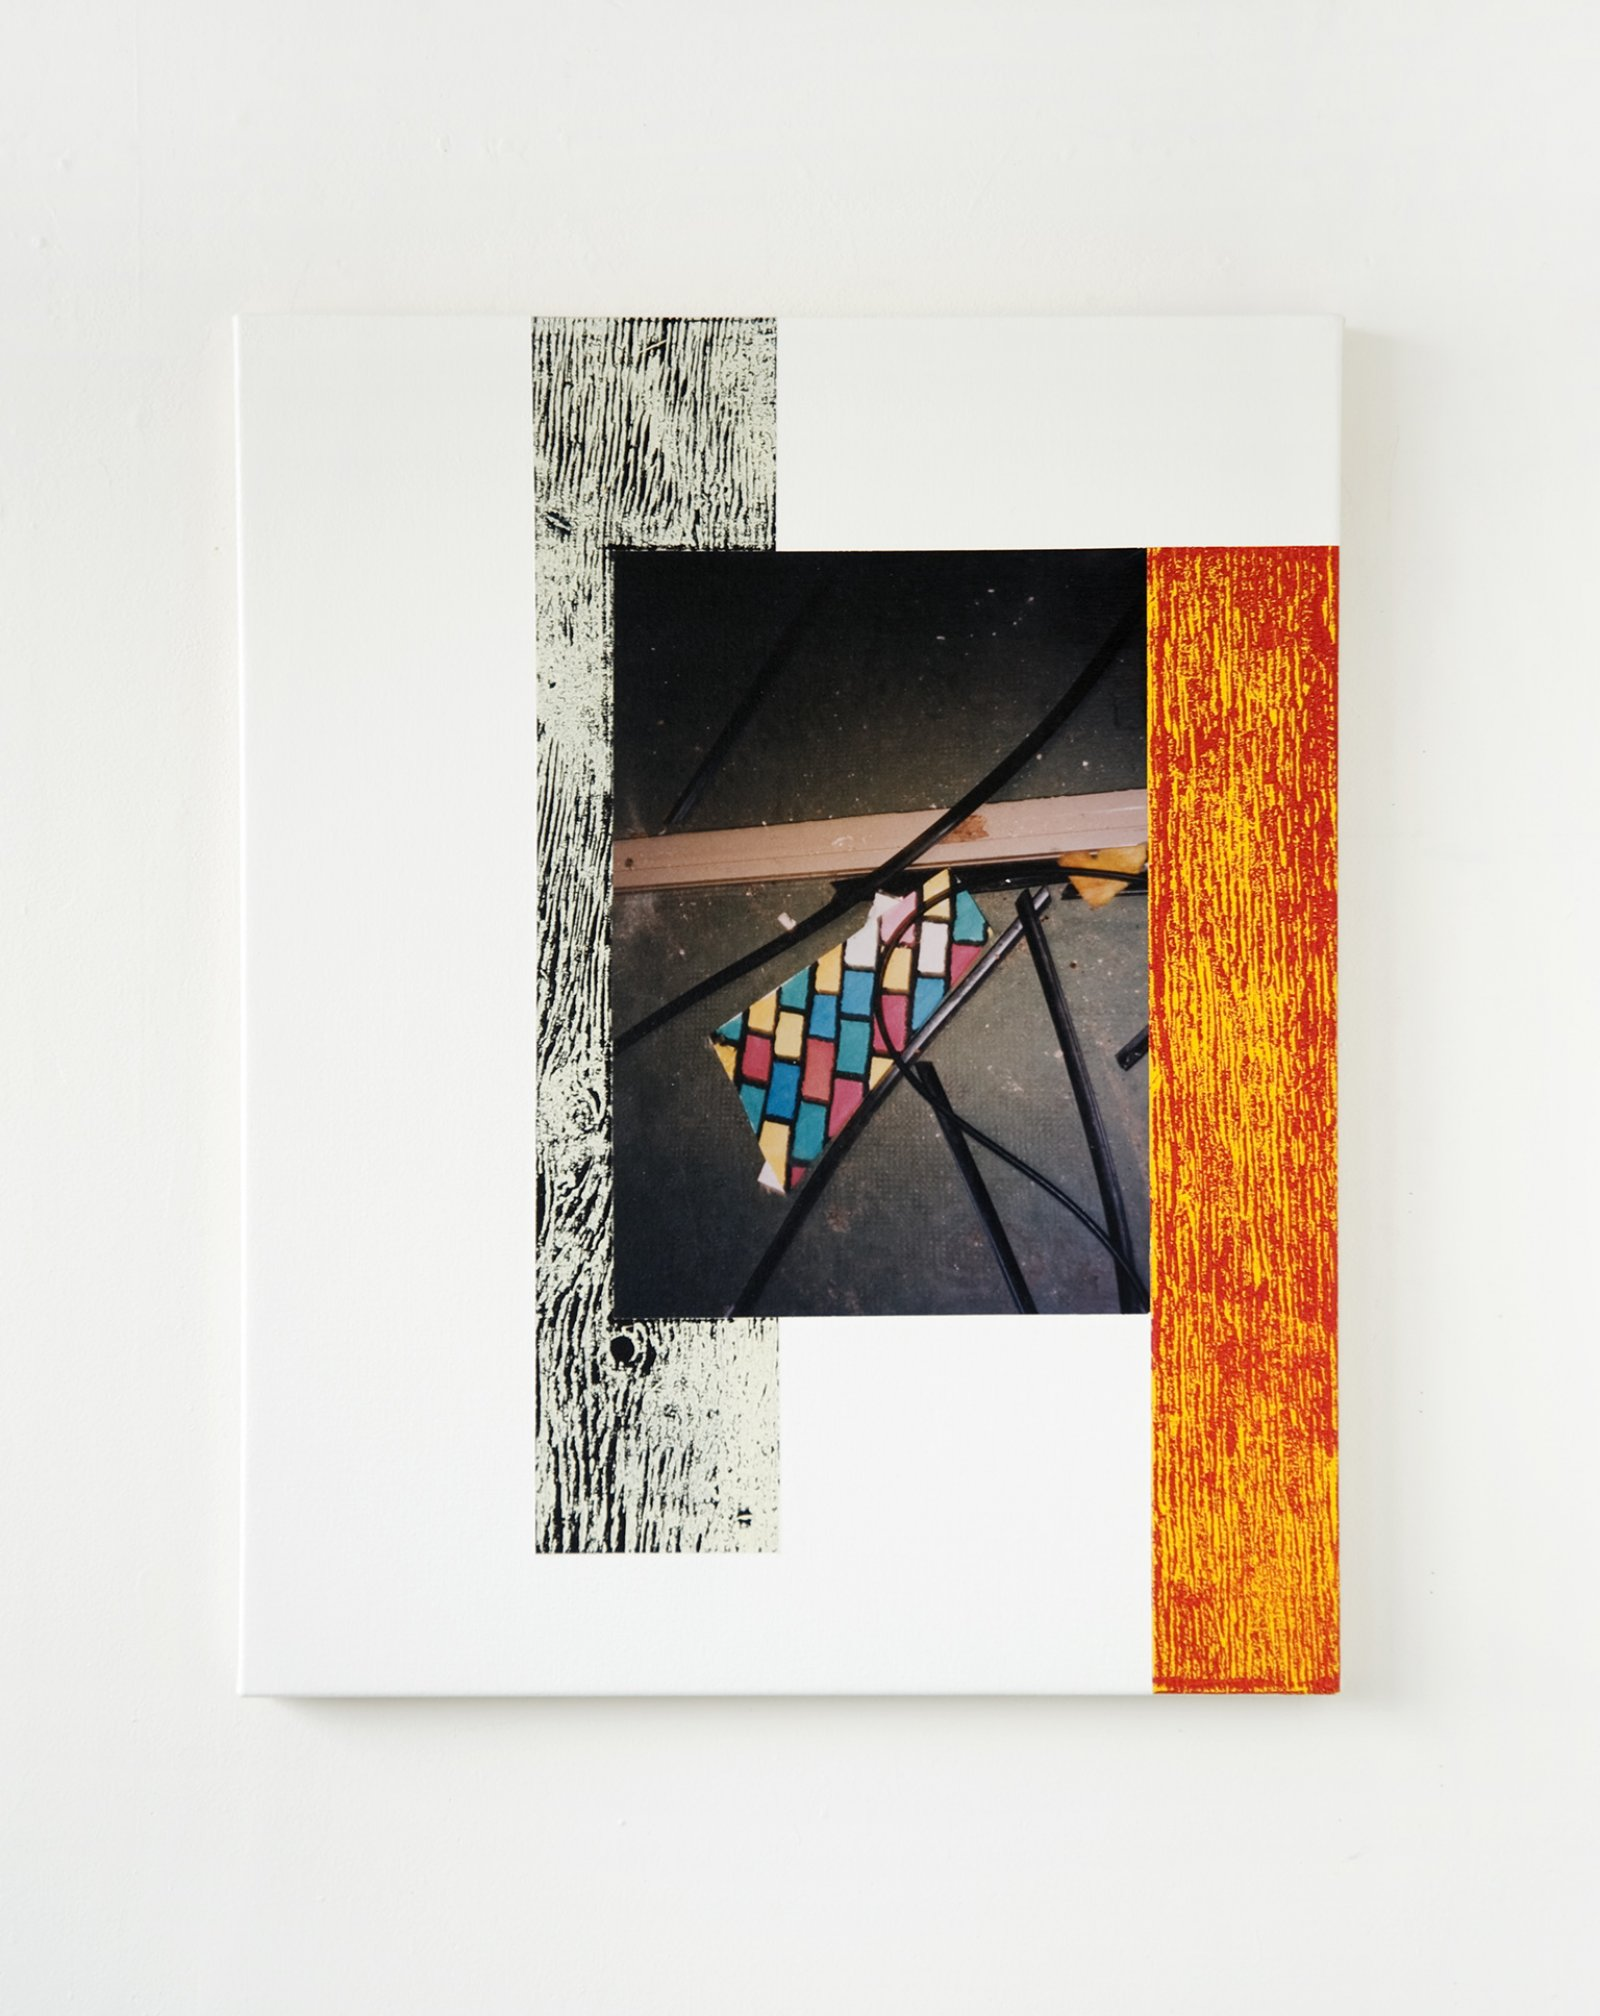 Ian Wallace,Abstract Art IV, 1999, photolaminate with acrylic on canvas, 30 x 24 in. (76 x 61 cm)